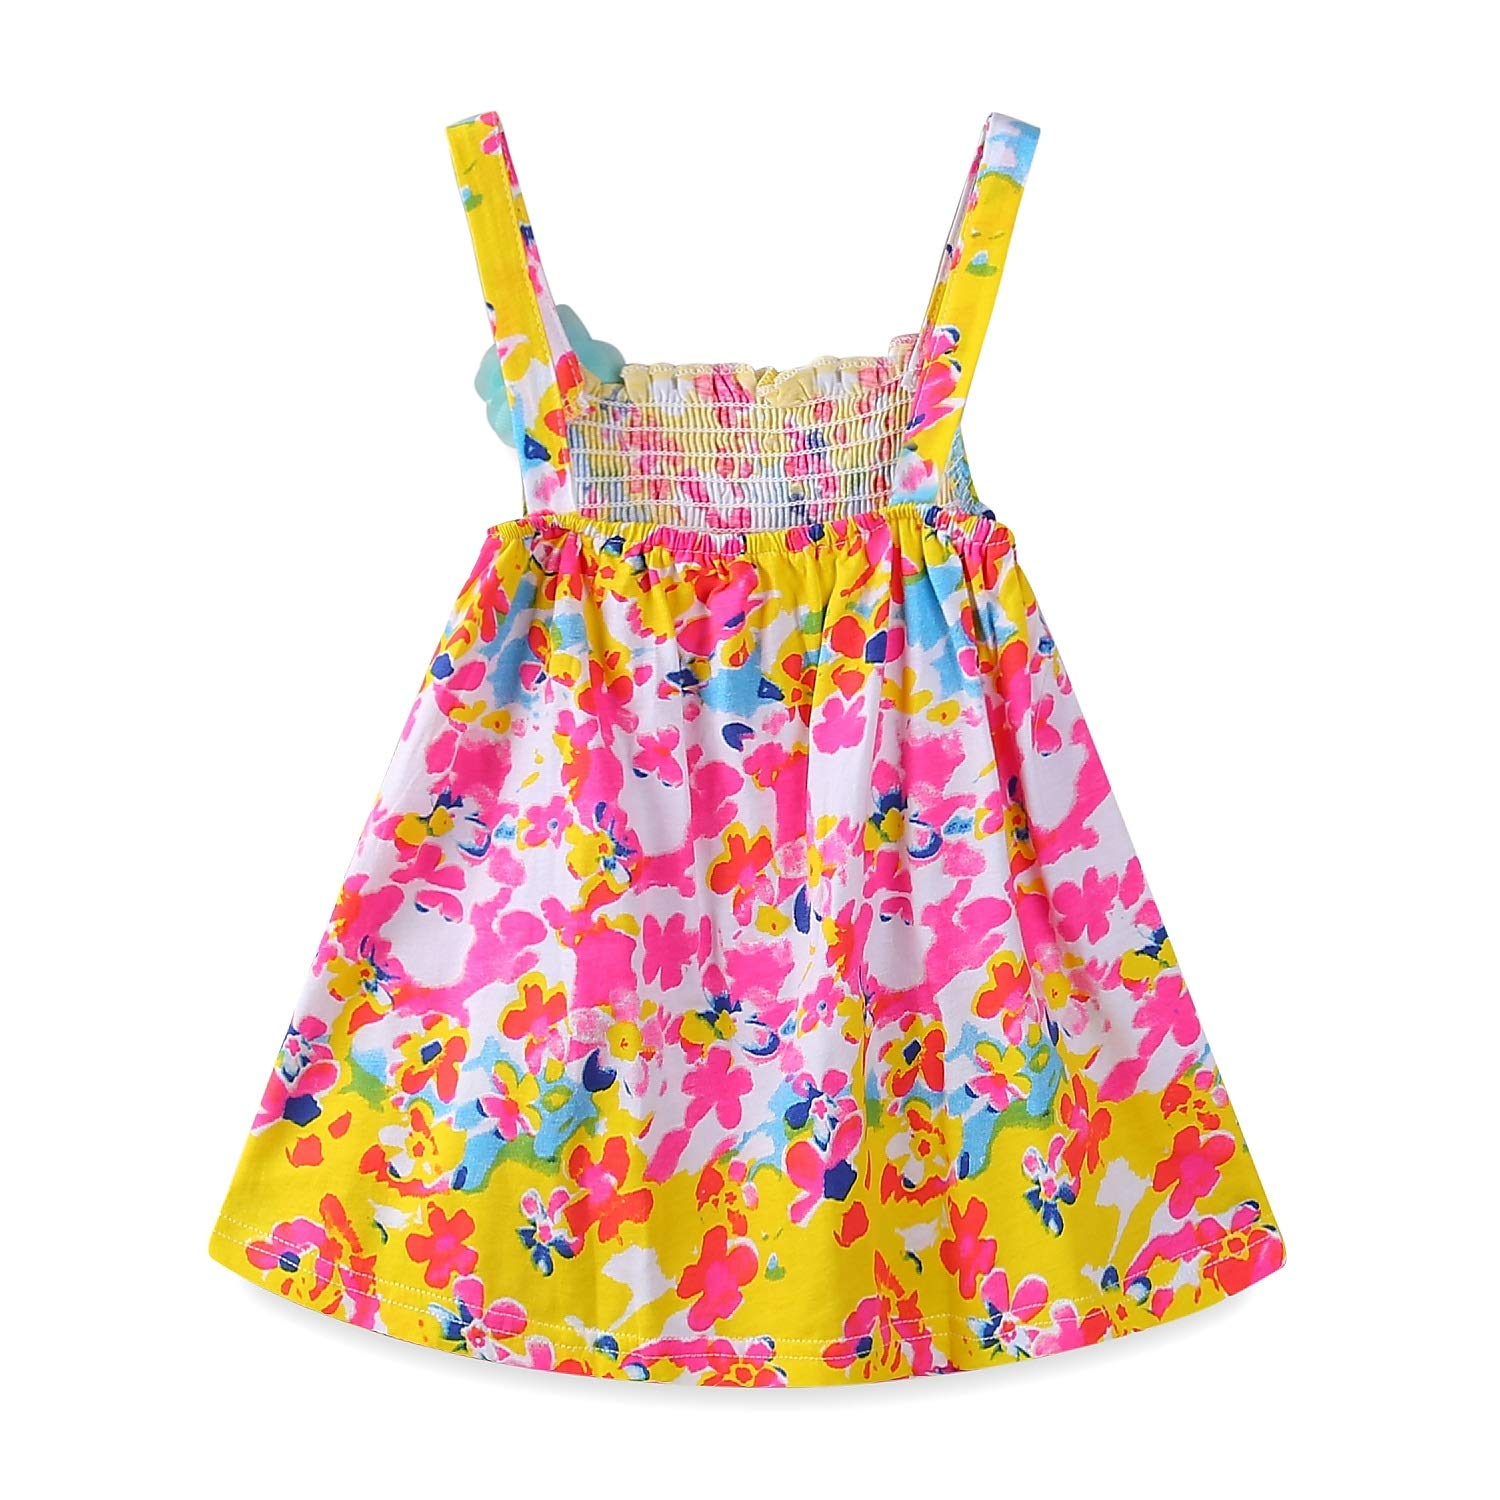 18fadb8077 Amazon.com  Mud Kingdom Baby Girl Clothes Summer Floral Slip Dresses   Clothing